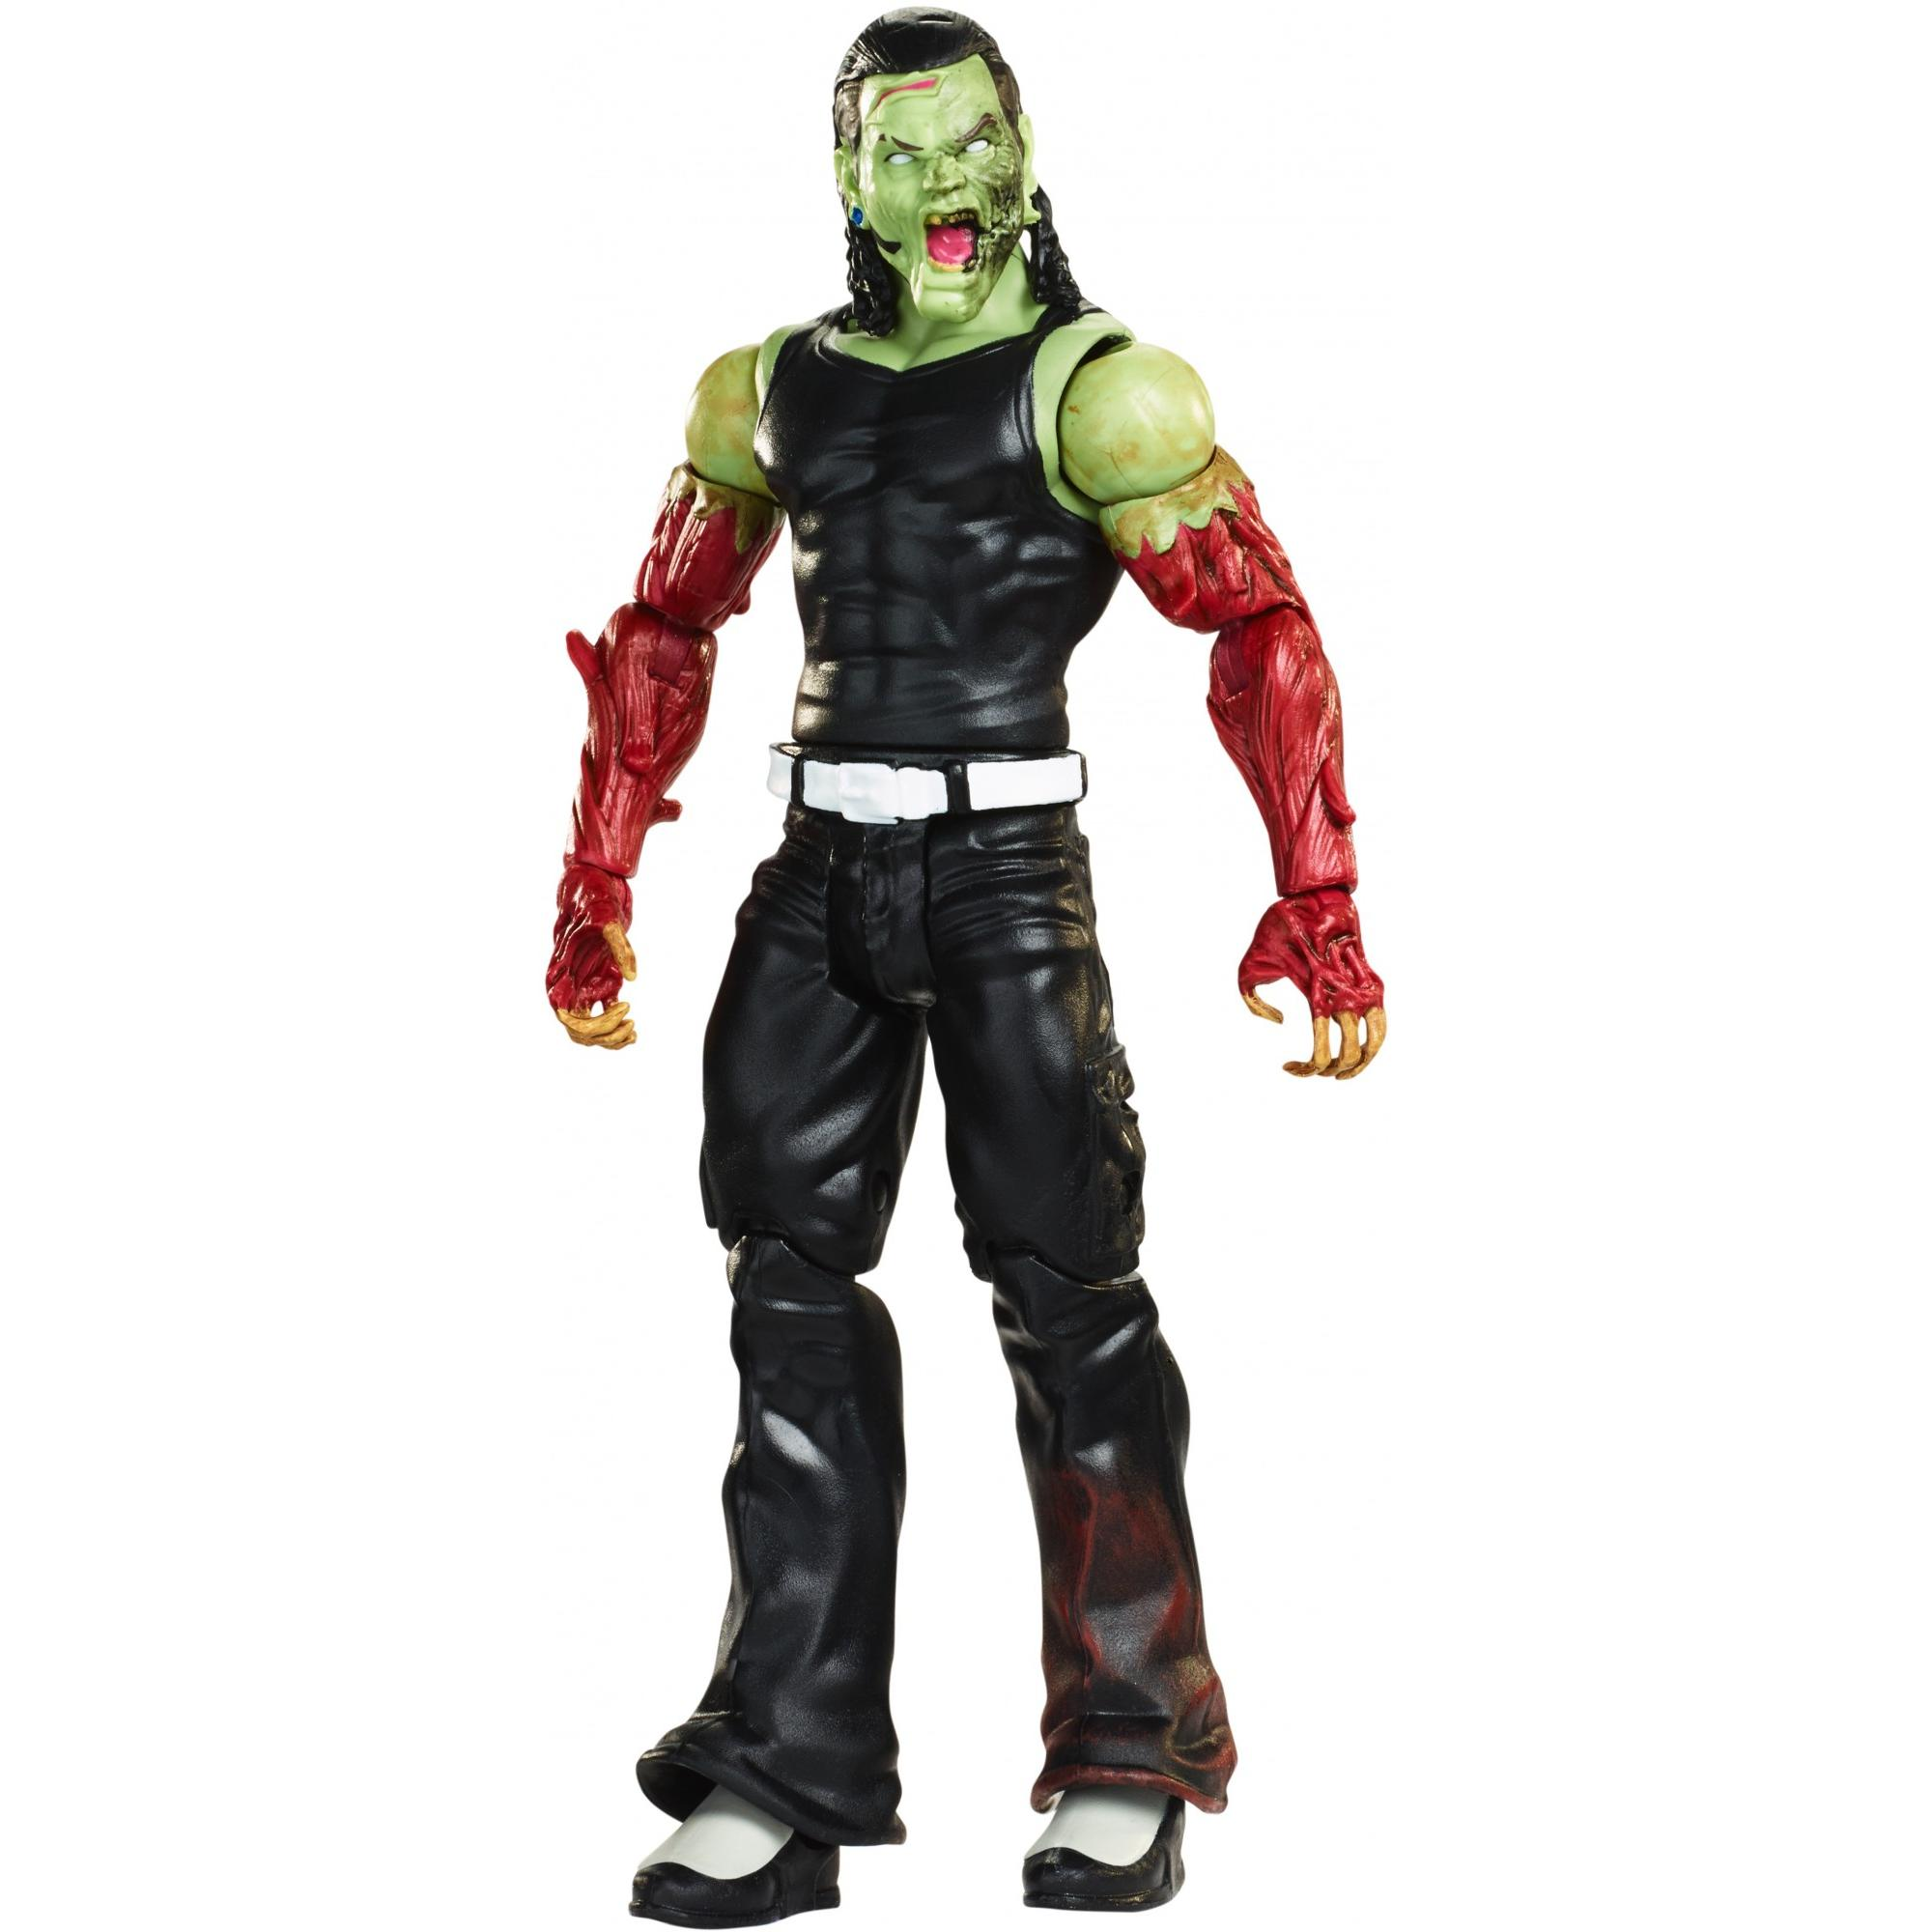 WWE Zombie Jeff Hardy by Mattel